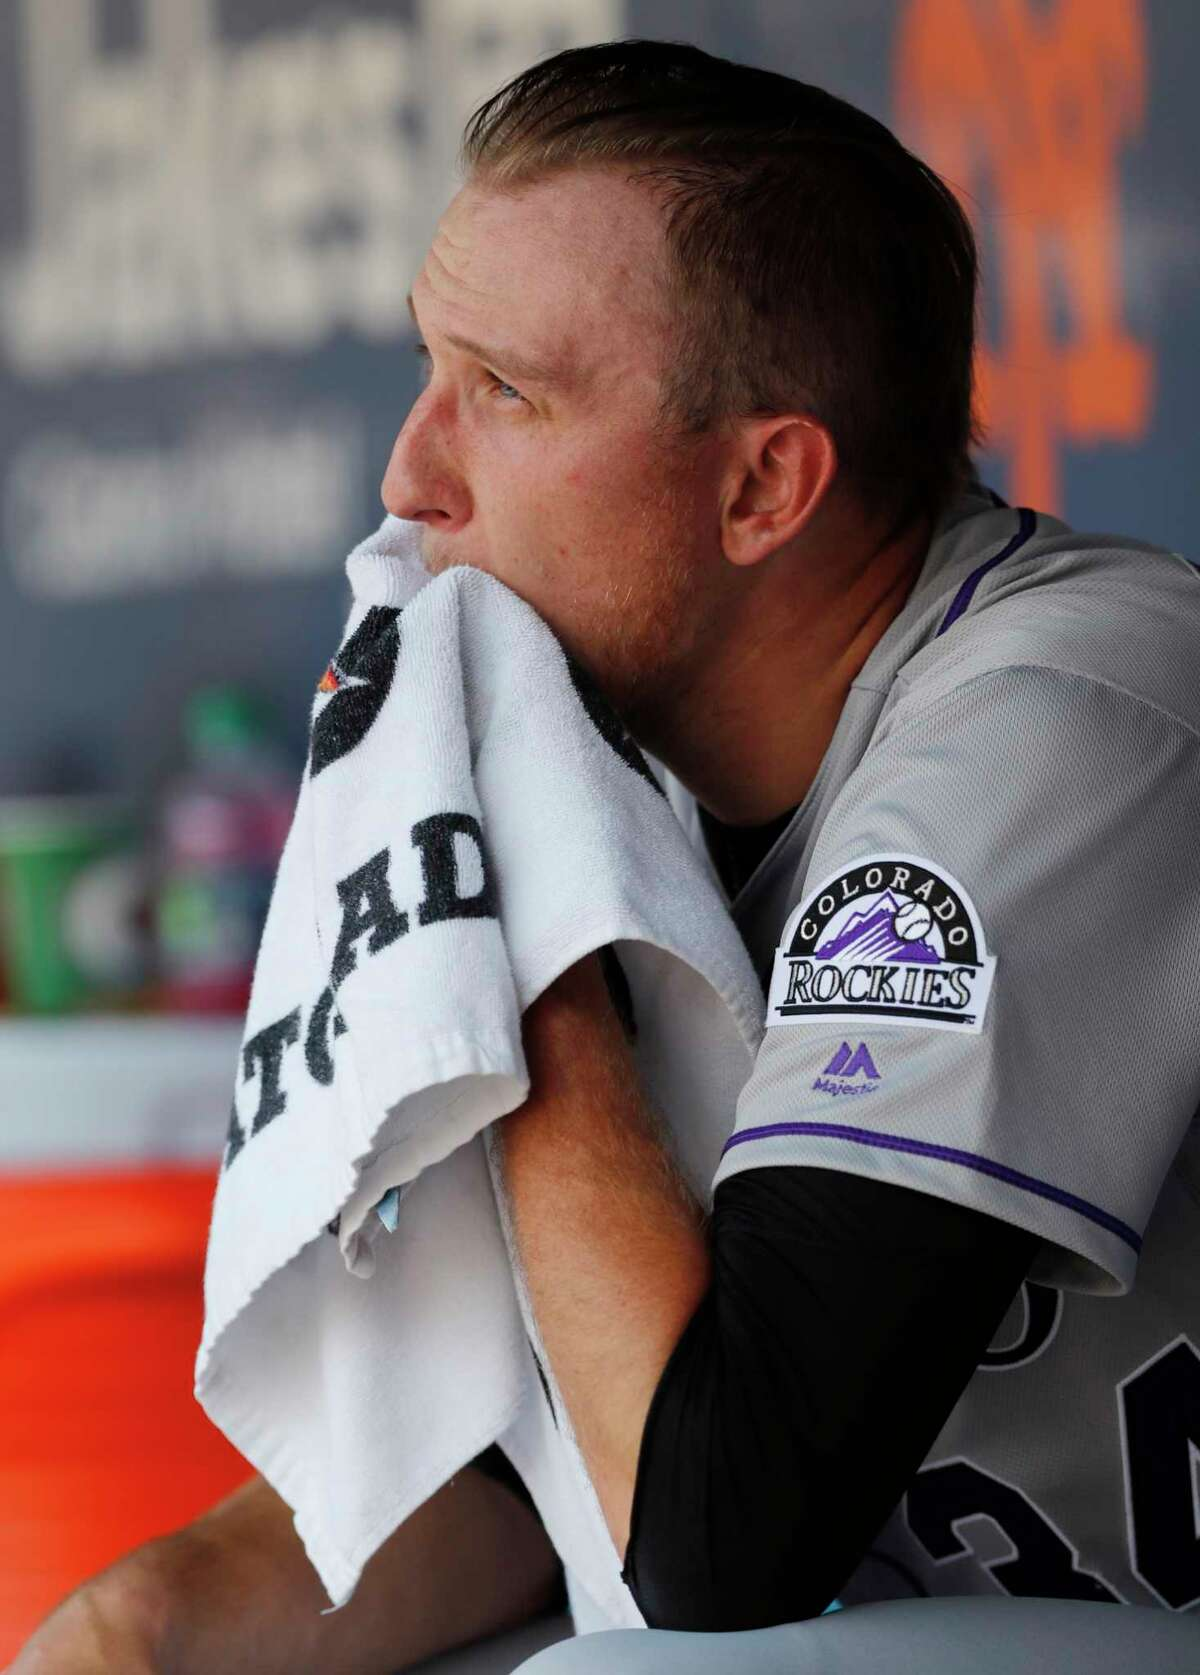 Colorado Rockies starting pitcher Jeff Hoffman sits in the dugout between innings during a baseball game against the New York Mets, Sunday, June 9, 2019, in New York. (AP Photo/Kathy Willens)